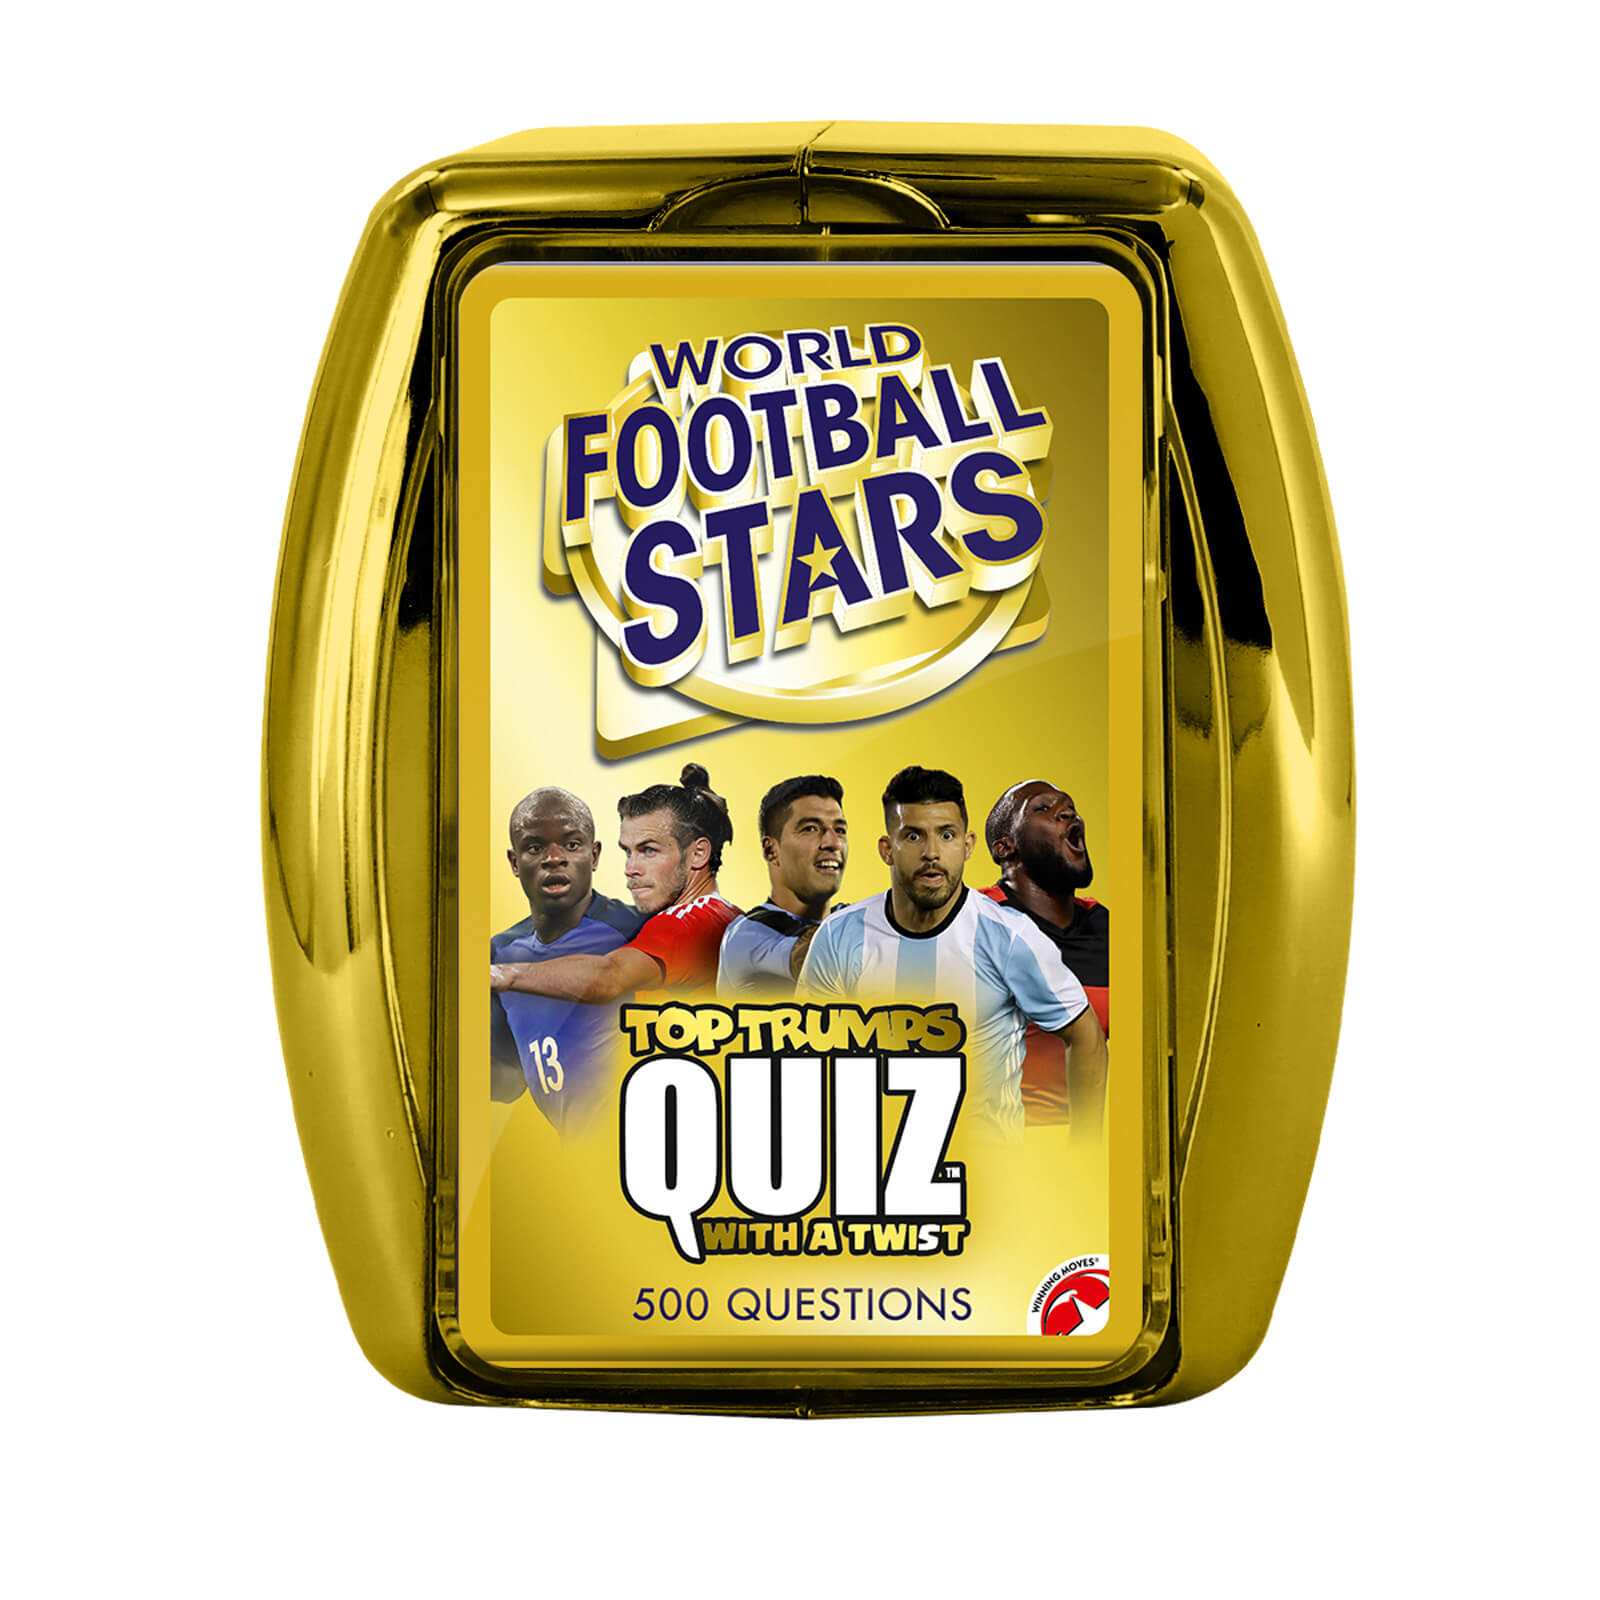 Image of Top Trumps Quiz Game - World Football Stars Edition